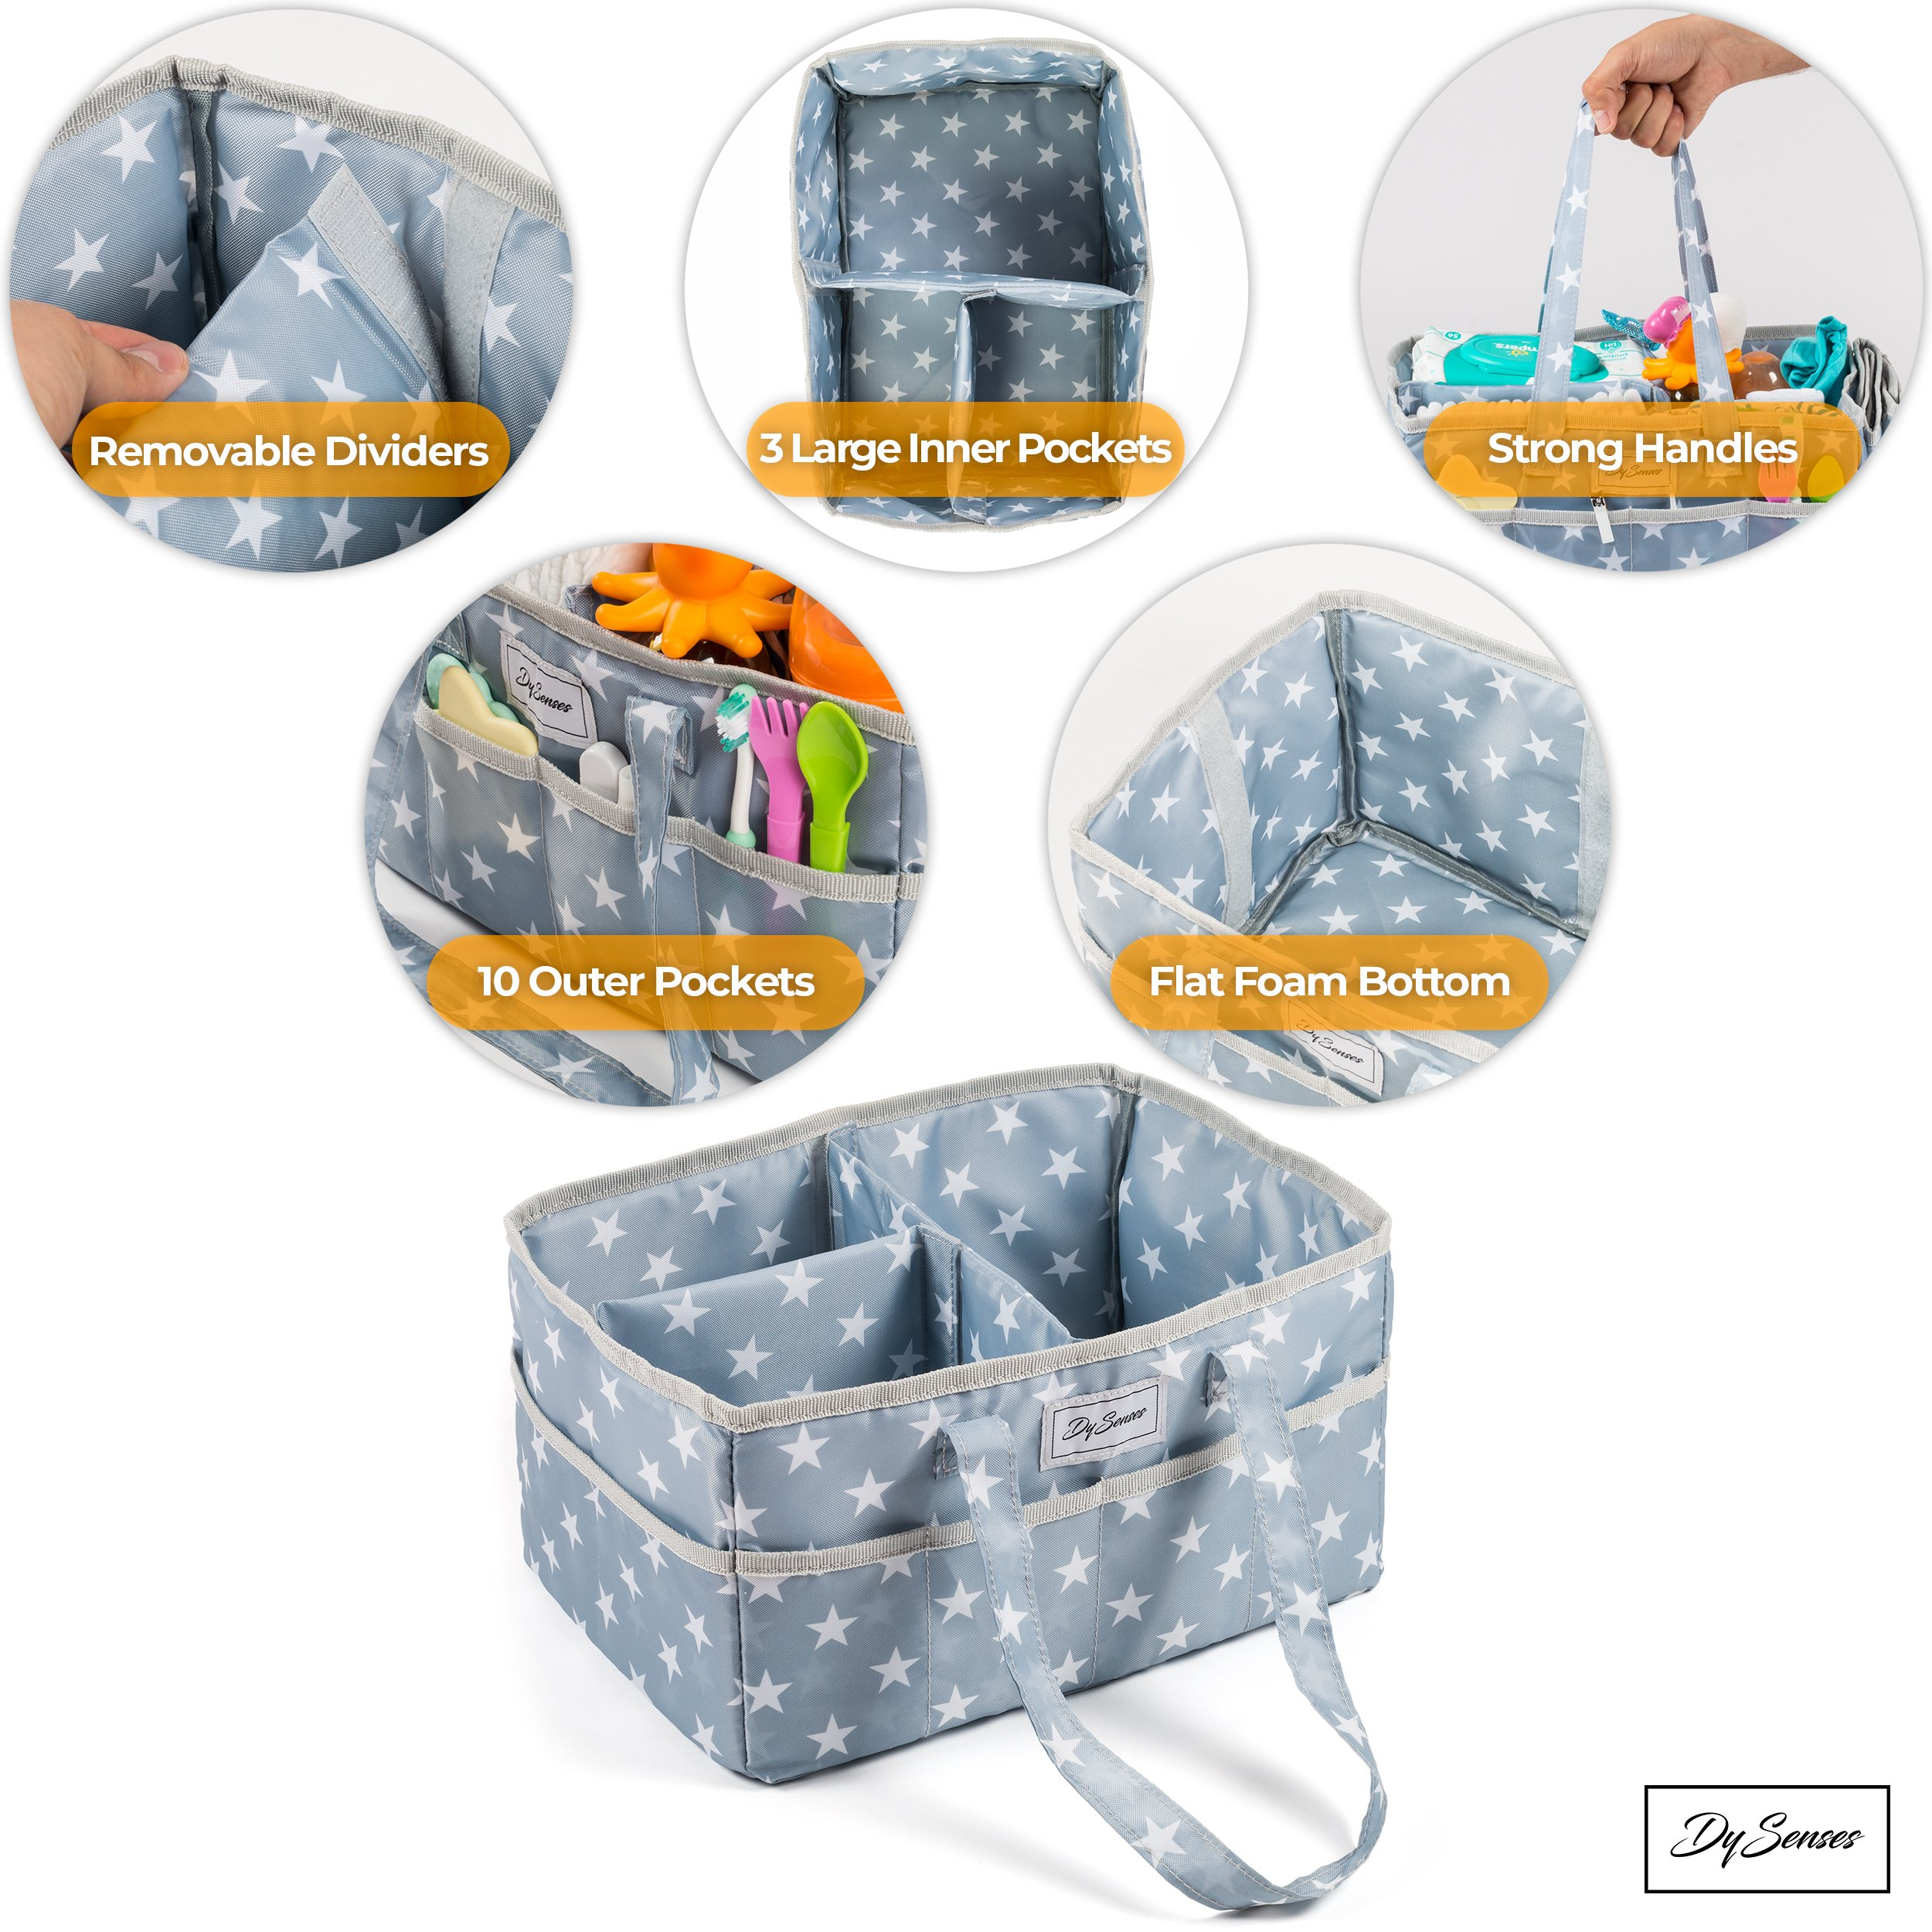 Diaper Storage Caddy Nursery Organizer | Grey Baby Diaper Caddy & Portable Changing Pad | Suitable for Car Travel Picnic & Nursing Station by DySenses (Image #8)